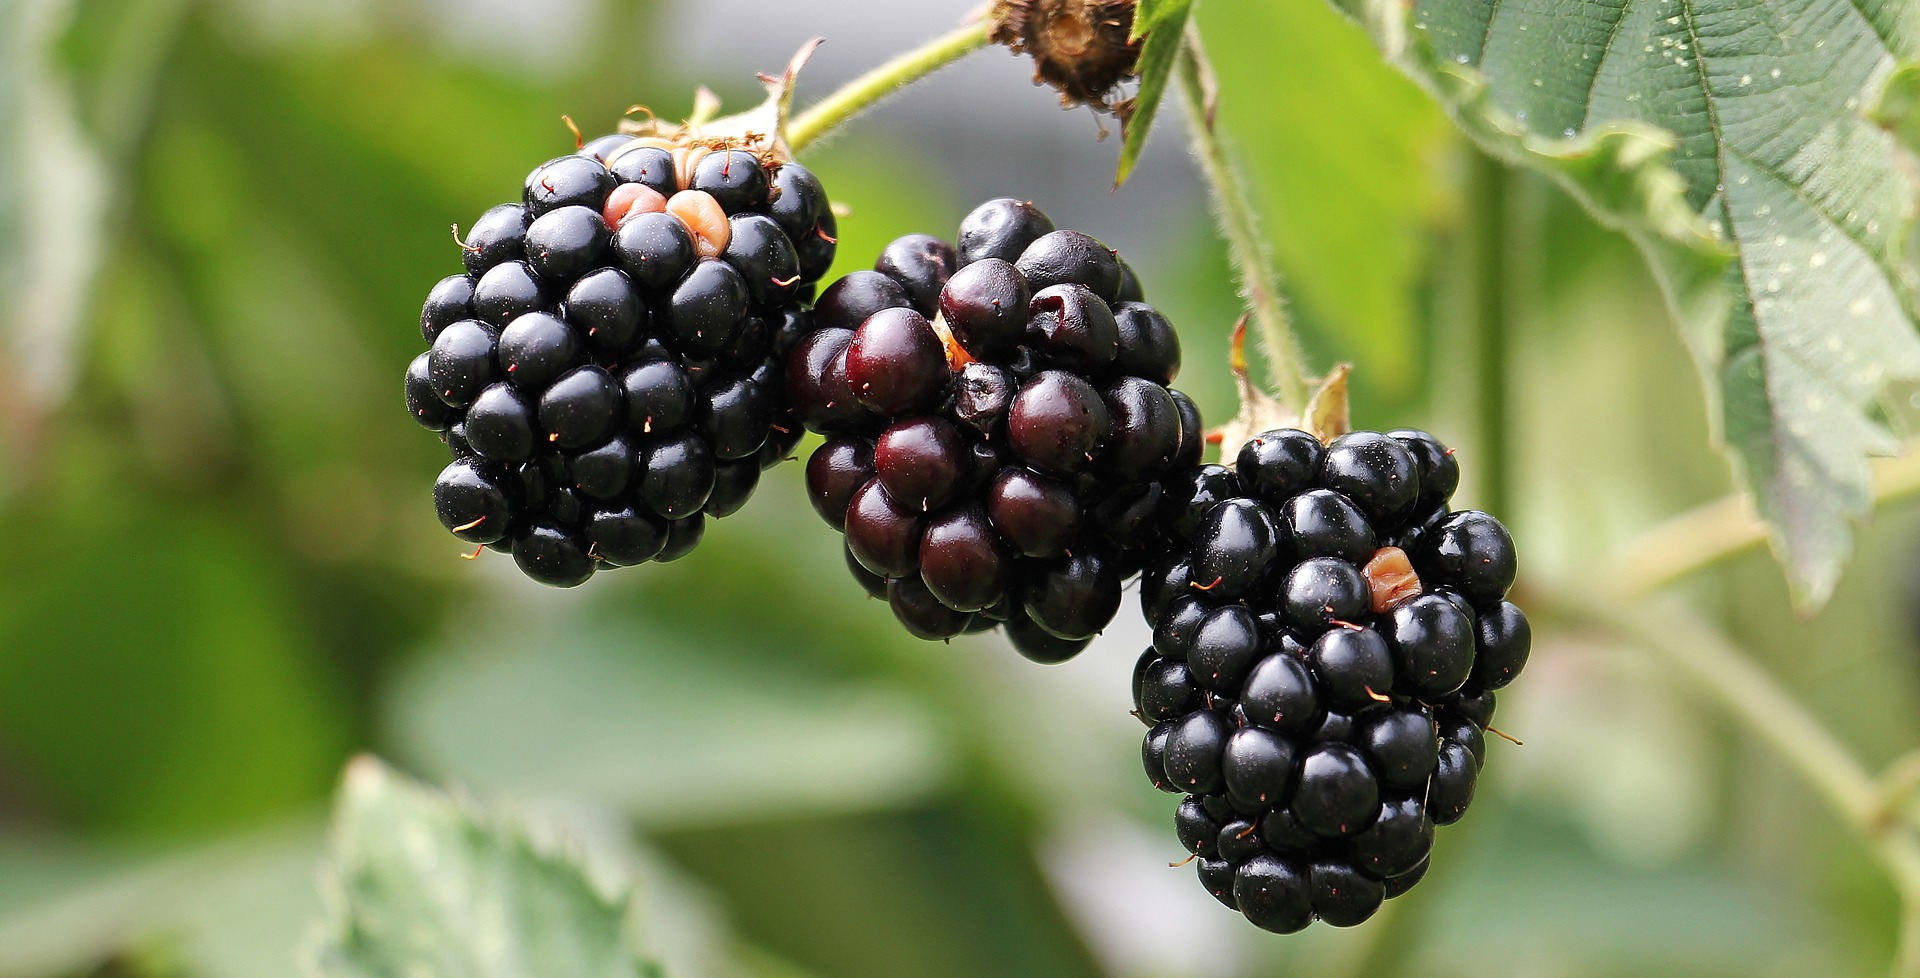 black berries need to harvest yourself garden you tend to